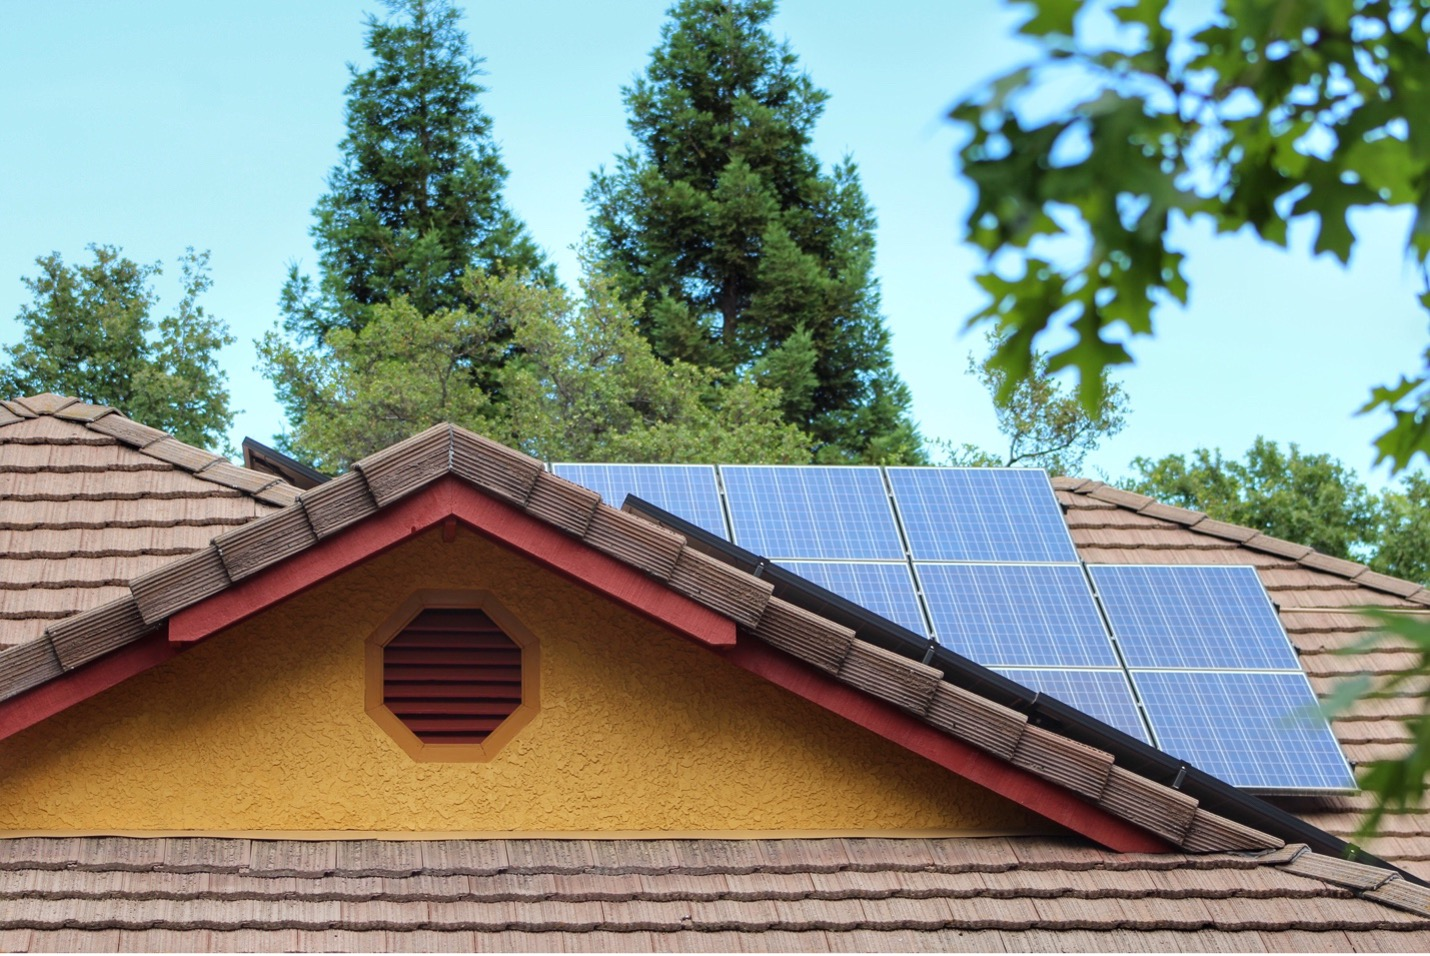 Read: Why you should consider solar to power your home in Texas